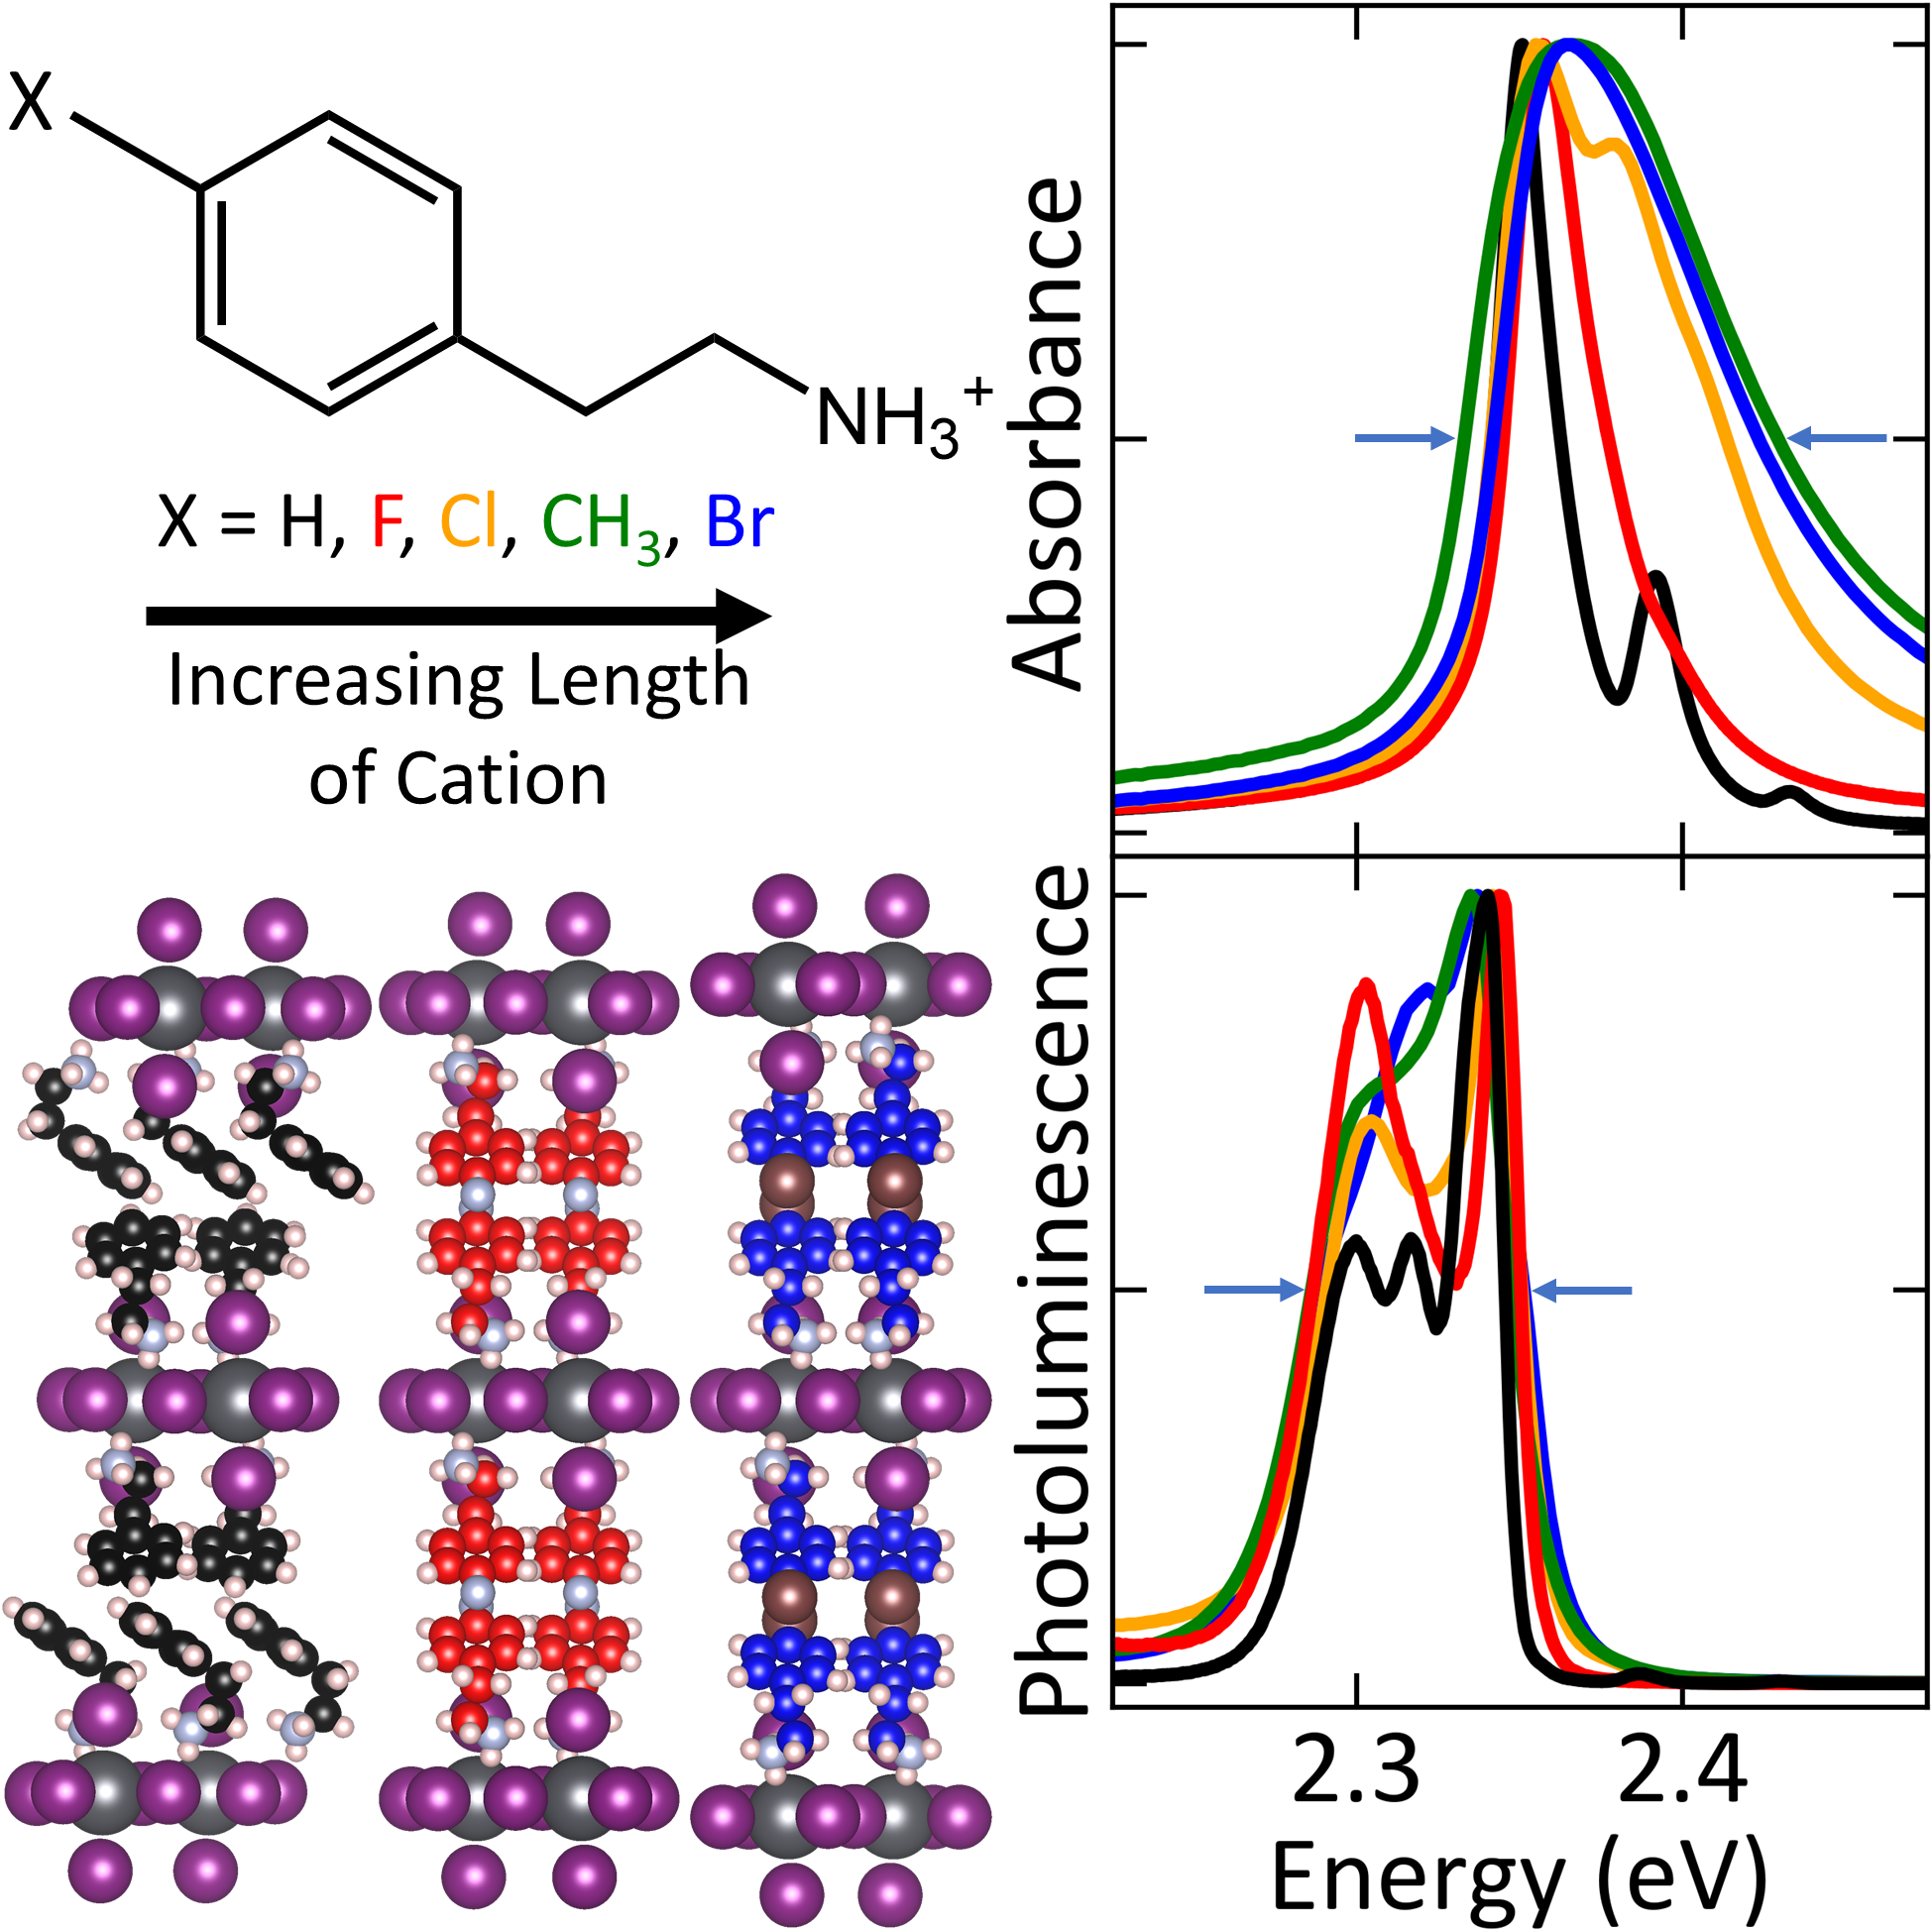 Longer Cations Increase Energetic Disorder in Excitonic 2D Hybrid Perovskites